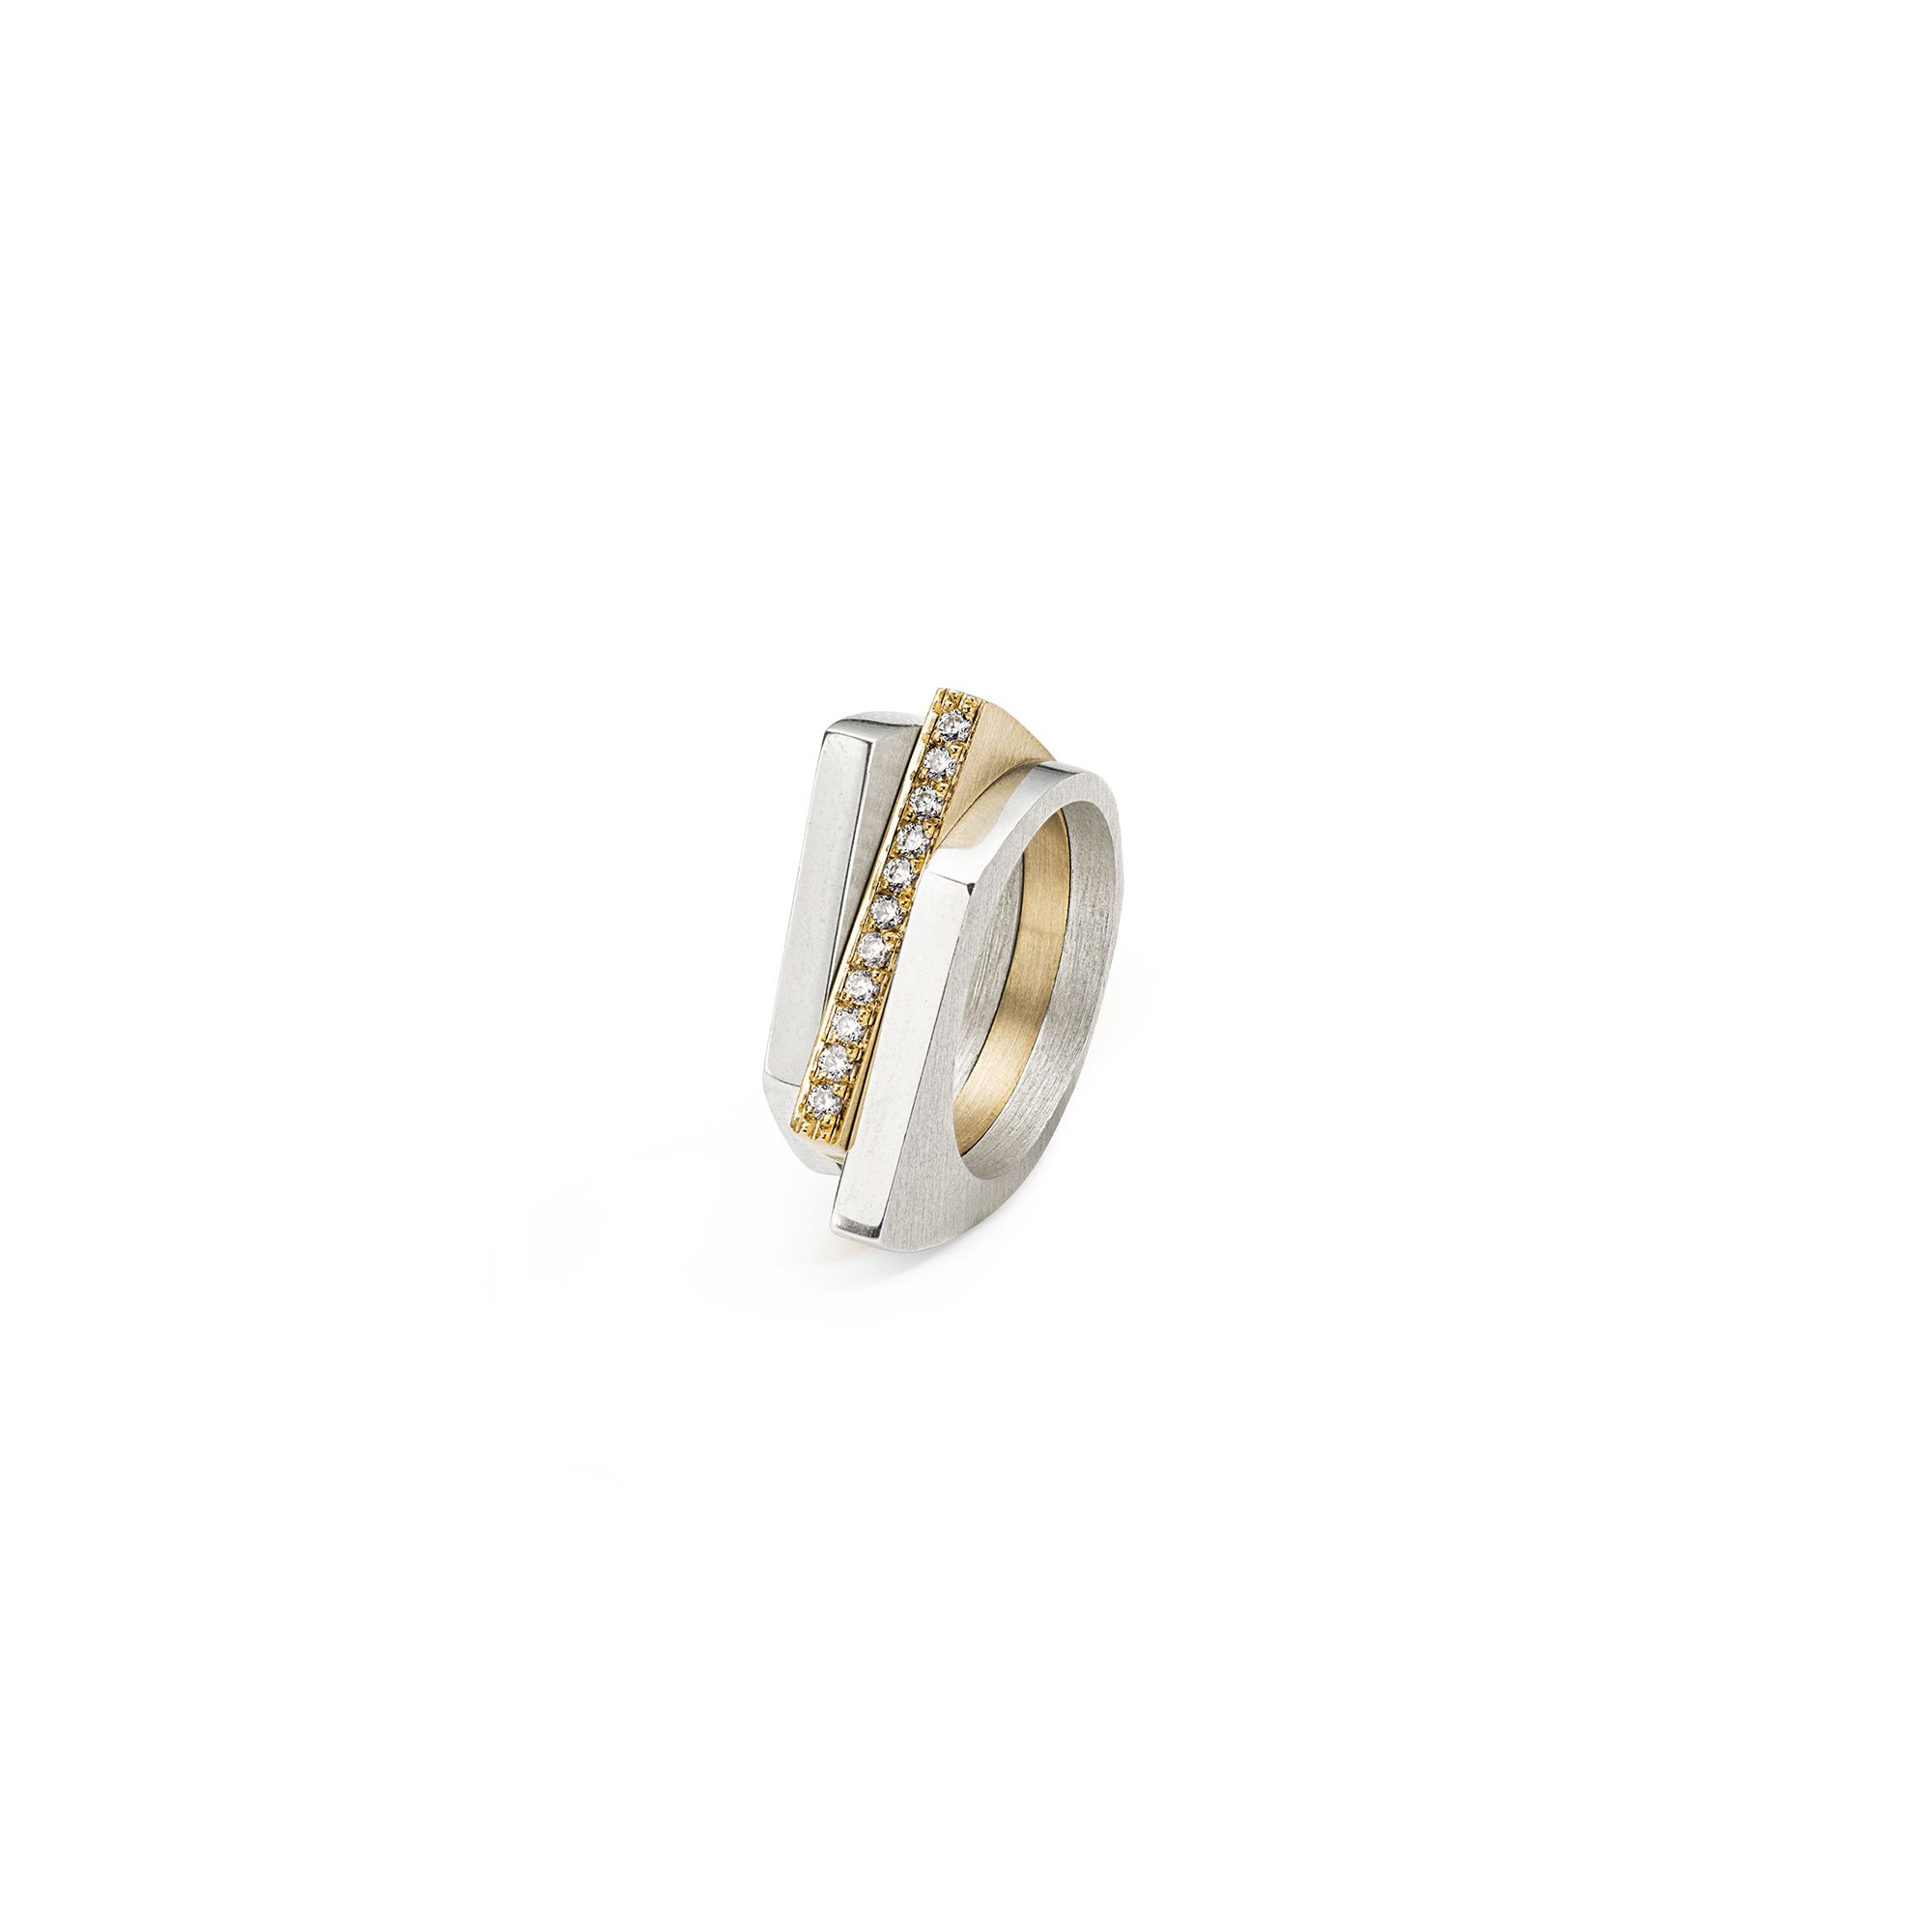 Three silver and gold 'Congiunzioni' stackable rings Yellow gold and silver rings with diamonds